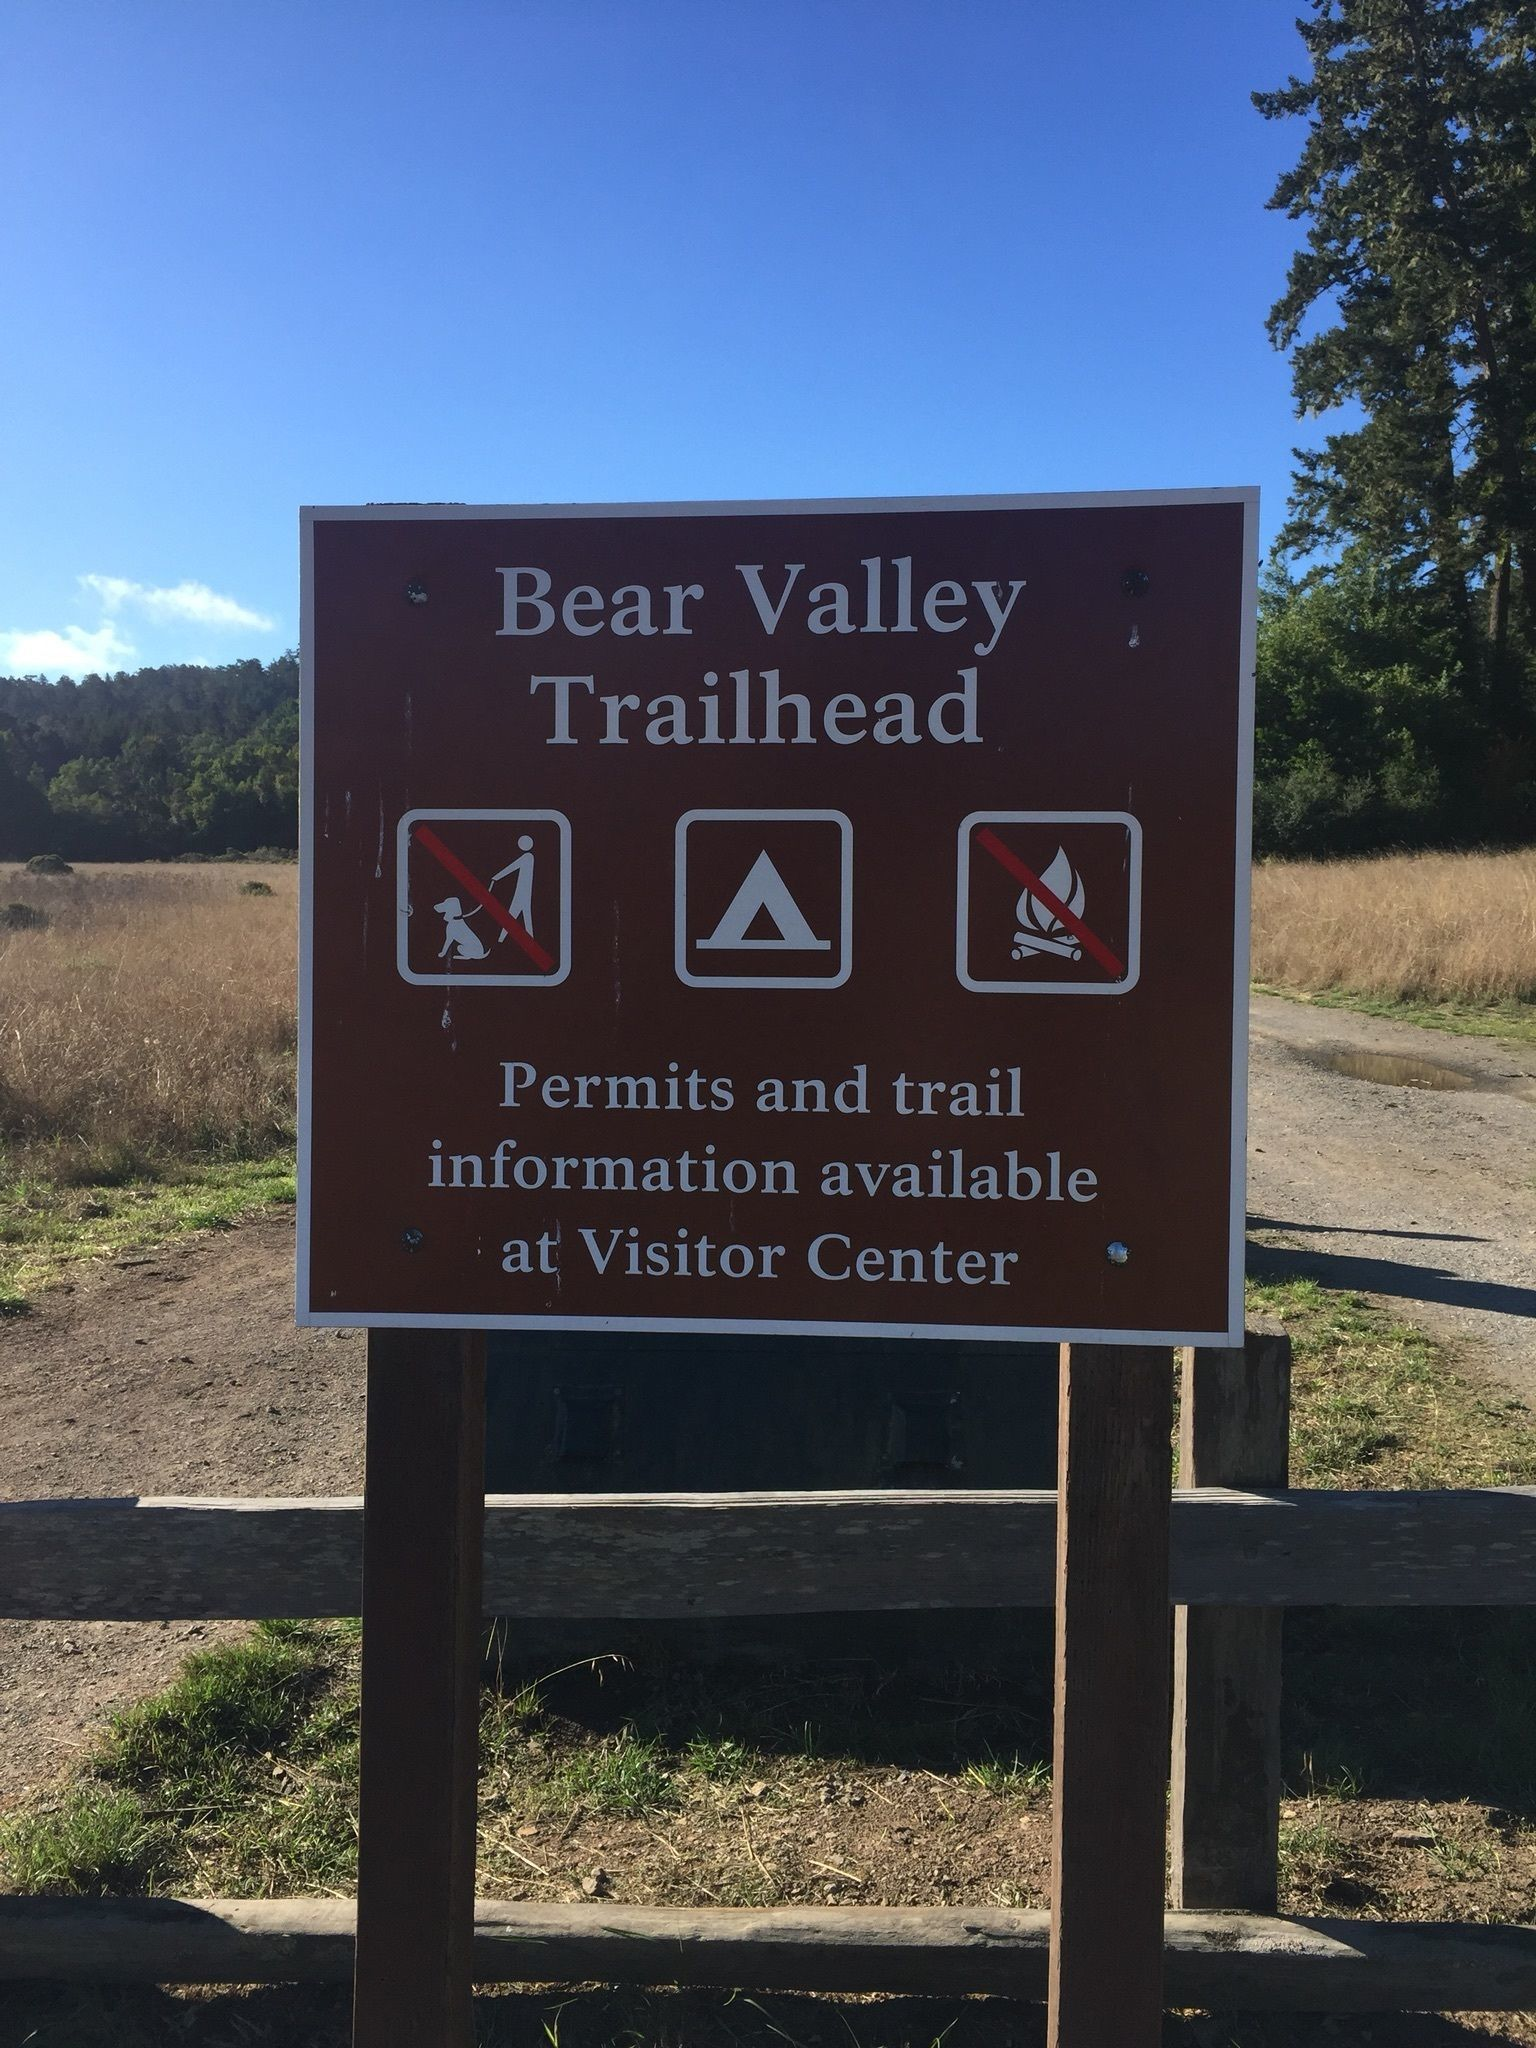 Alamere Falls and Wildcat Camp via Bear Valley Trail